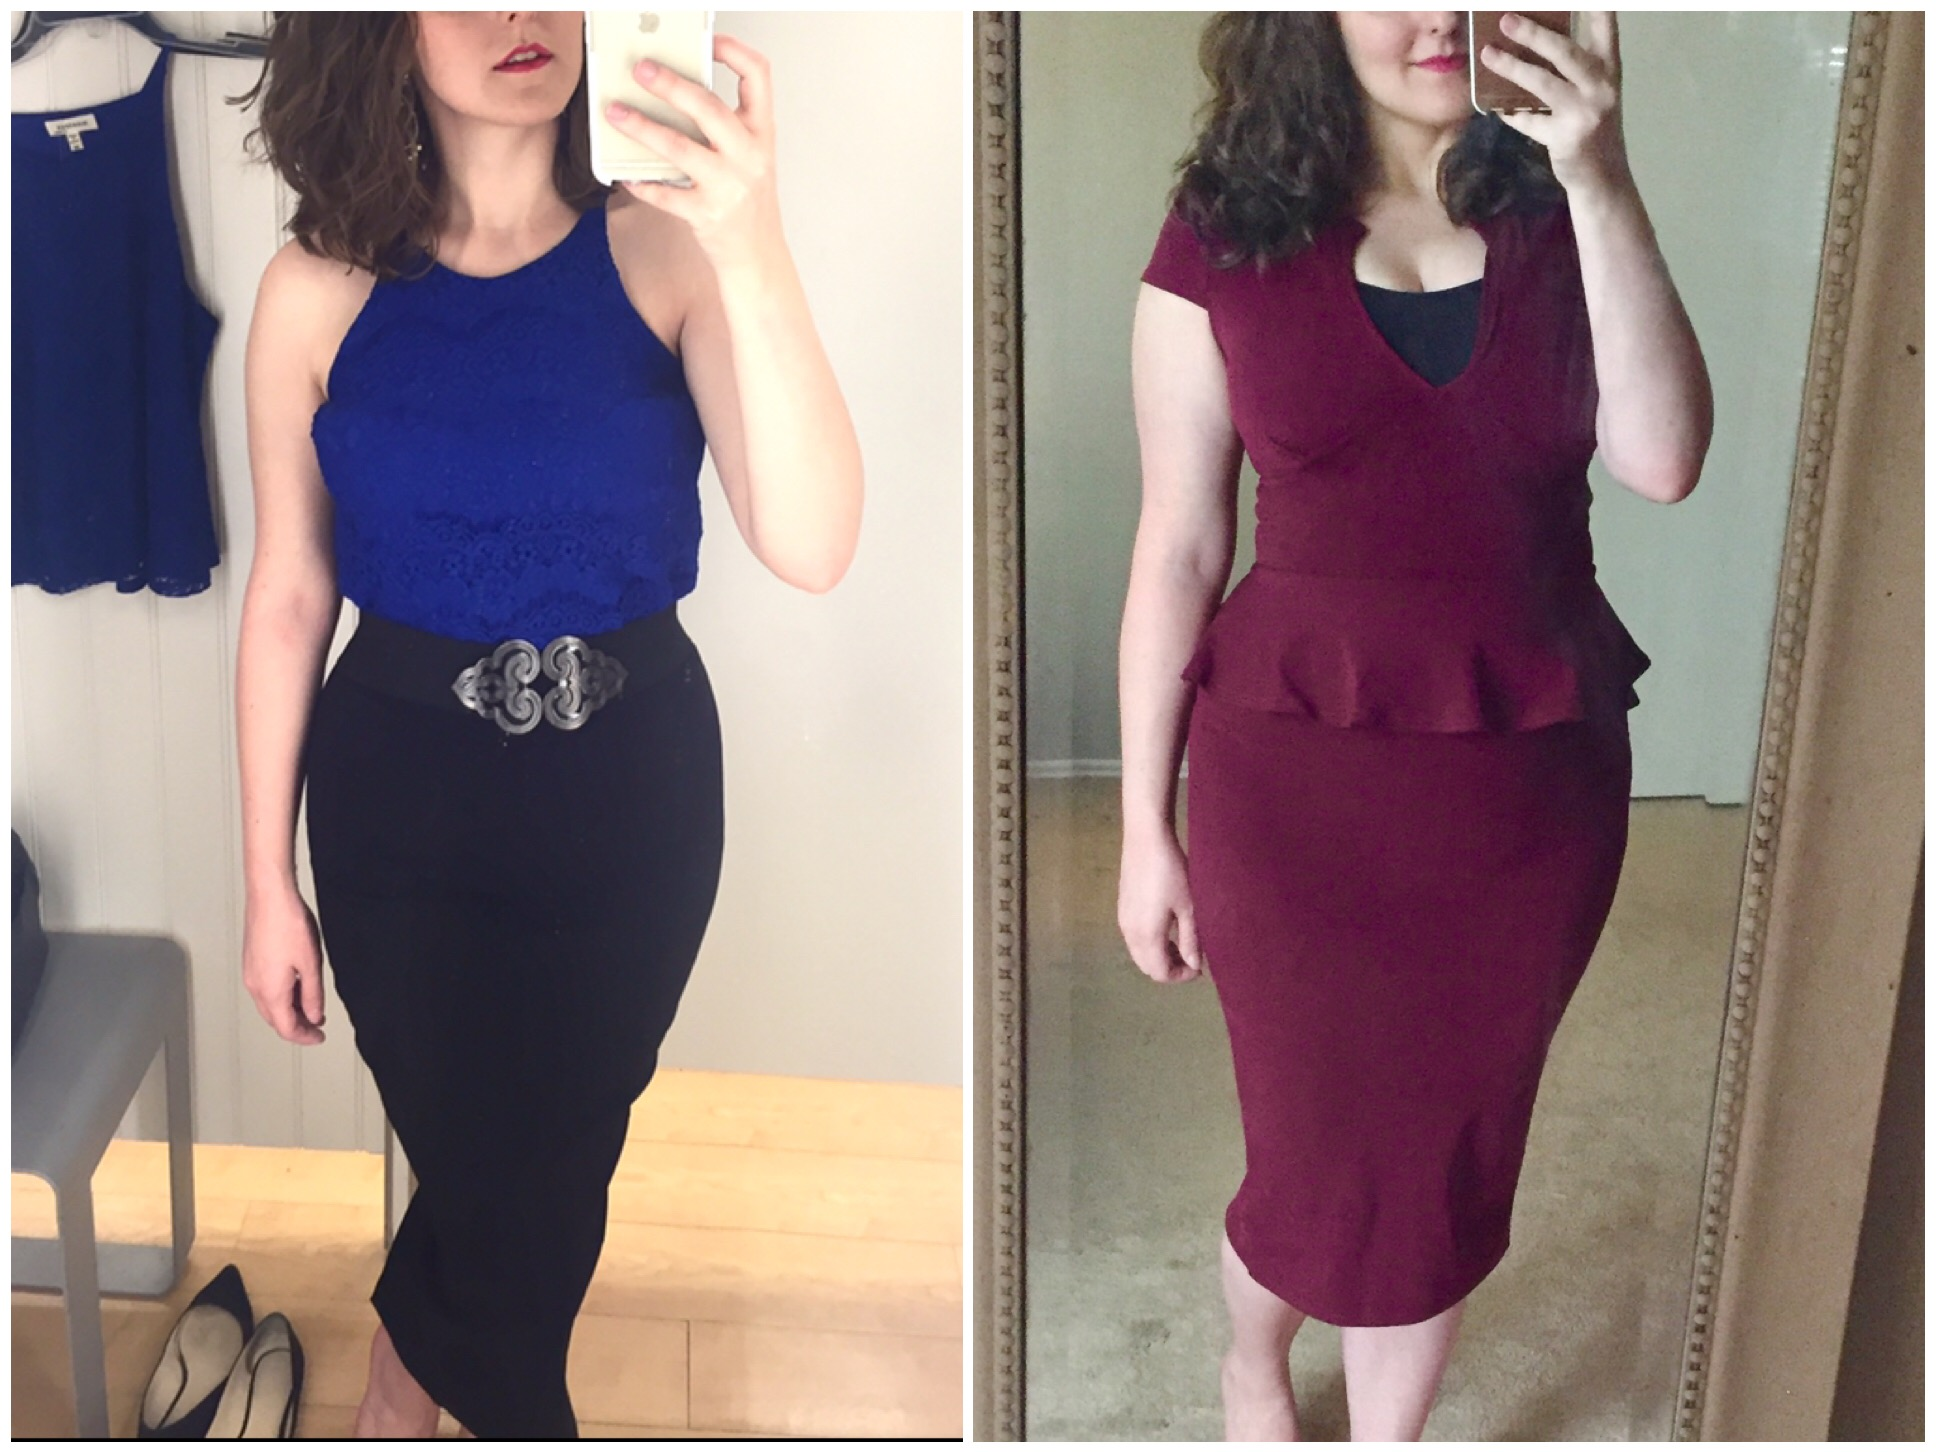 Here I am a month before getting pregnant on the left, and a couple weeks after giving birth on the right.